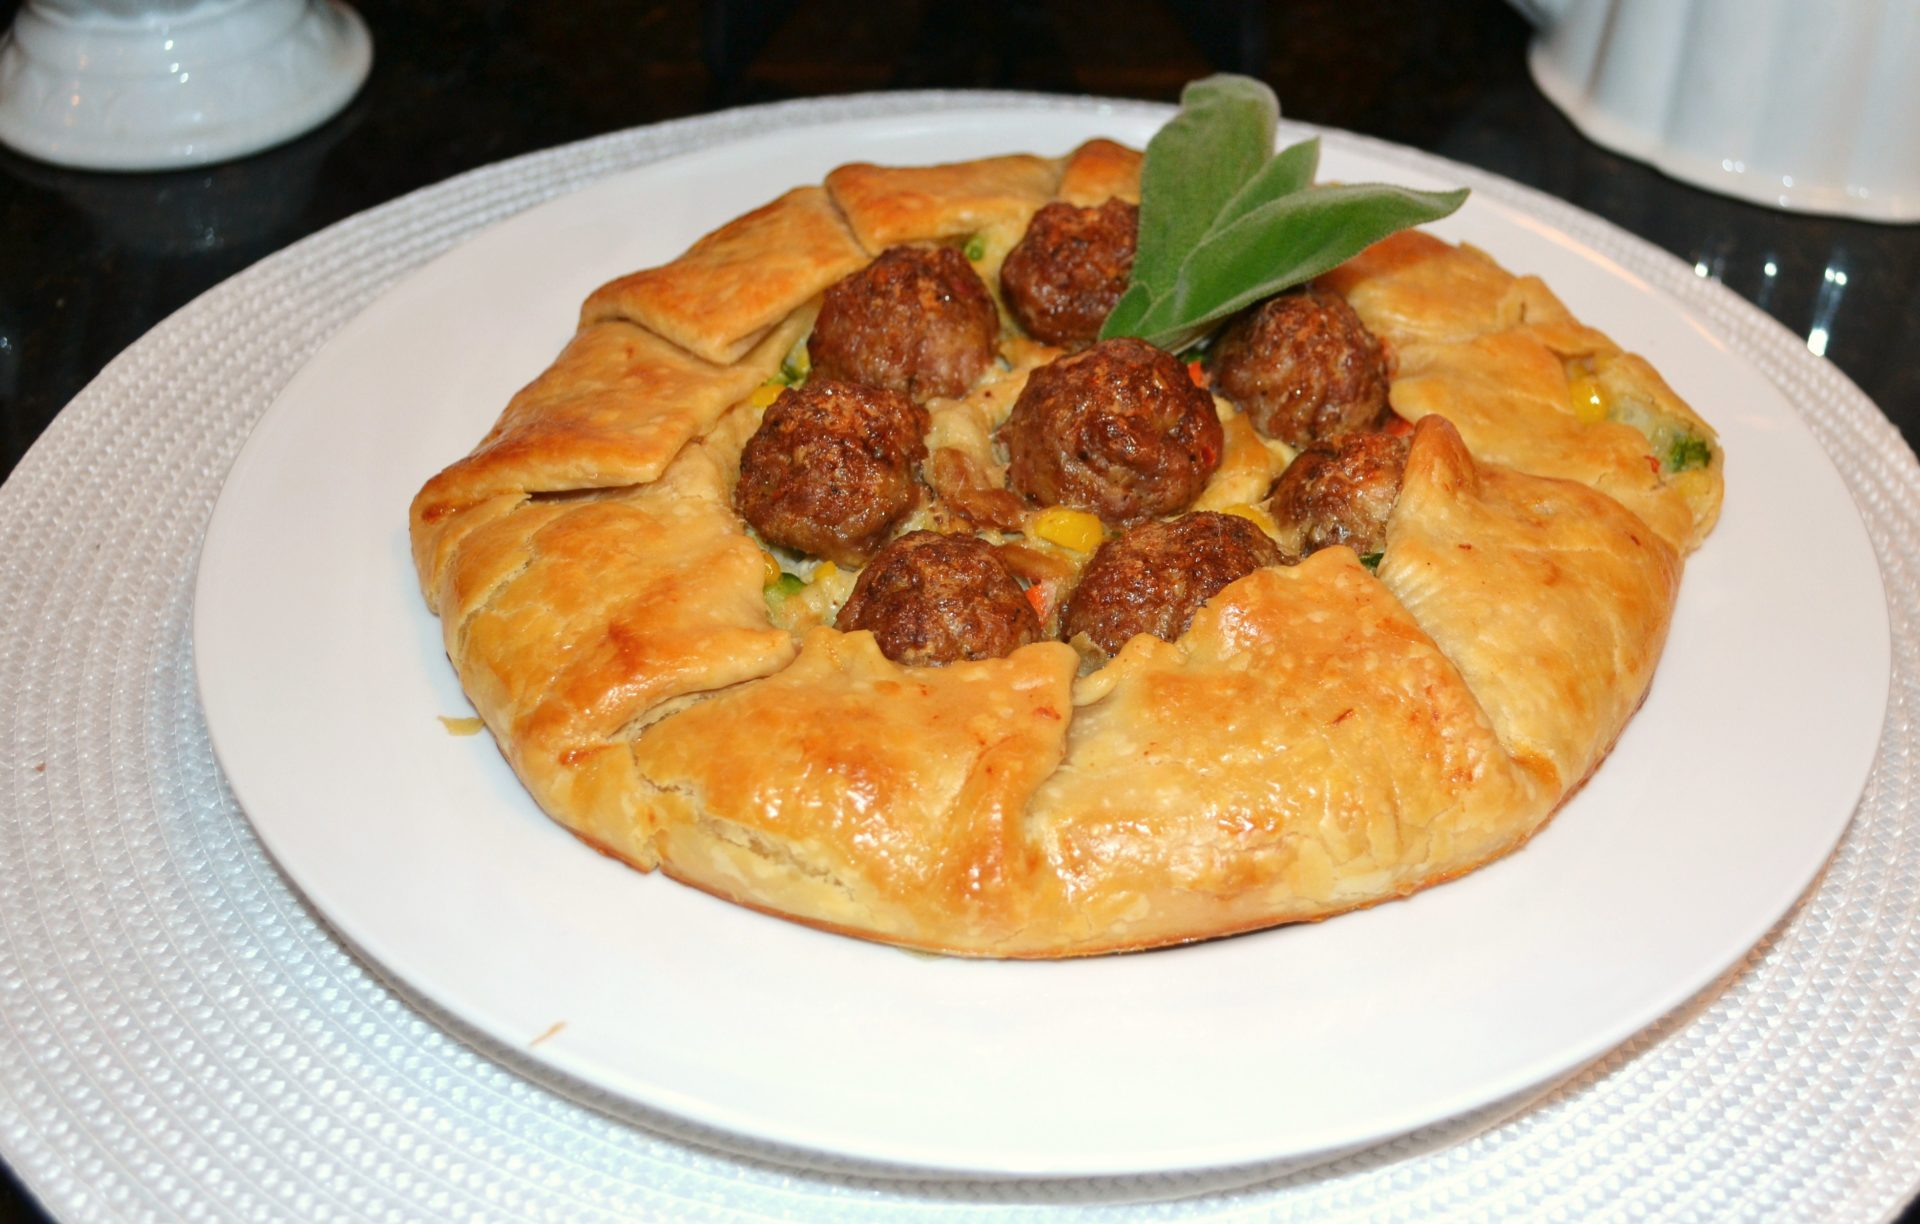 Winter- Rustic chicken pot pie with sage garnish